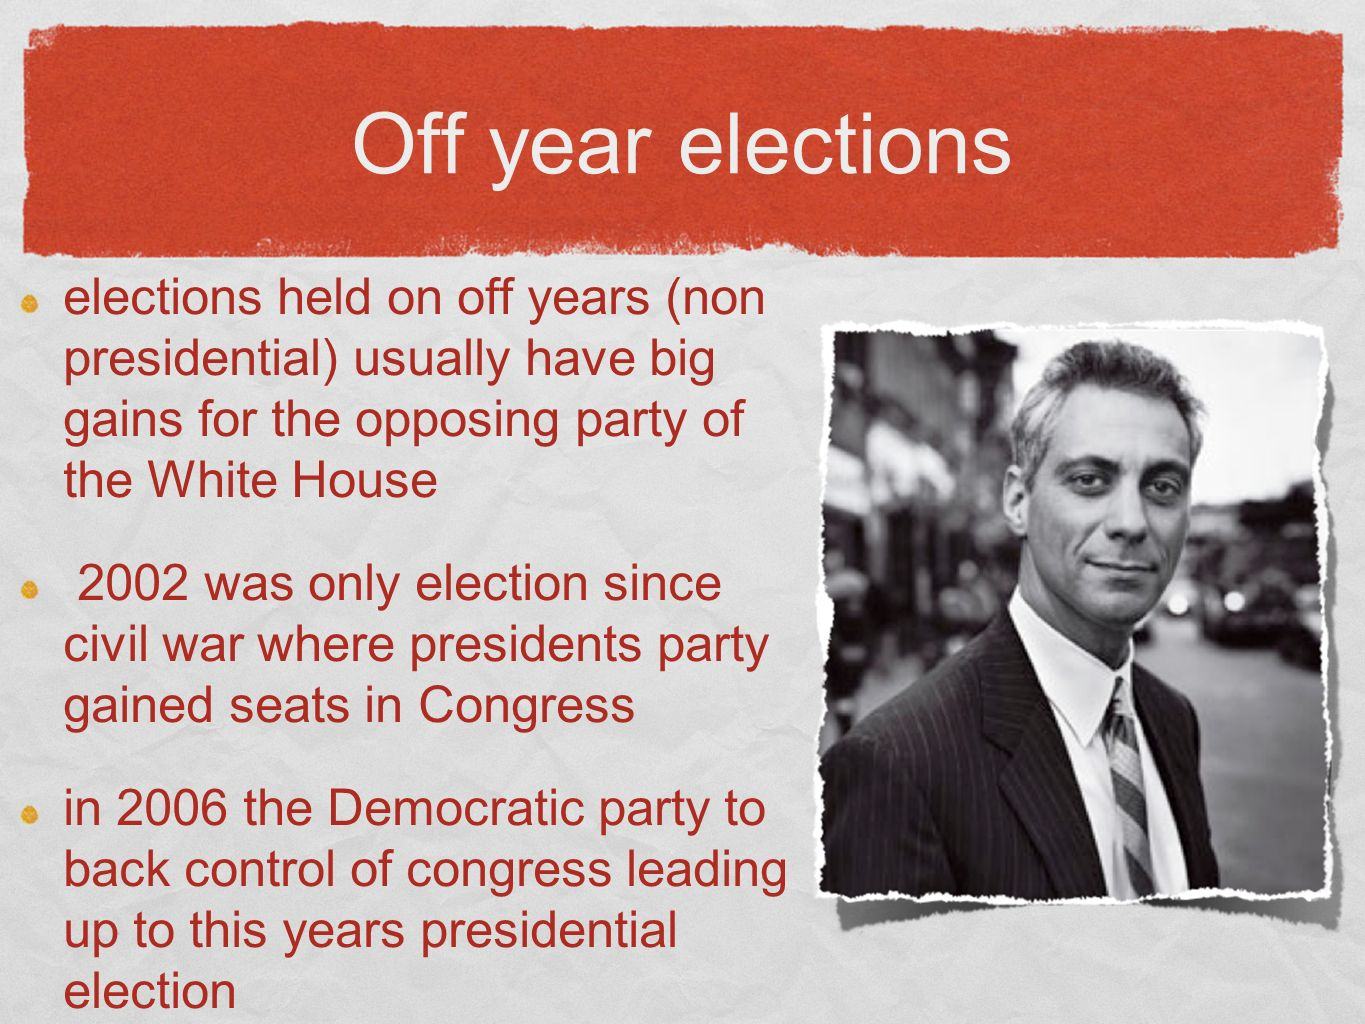 Off year elections elections held on off years (non presidential) usually have big gains for the opposing party of the White House 2002 was only election since civil war where presidents party gained seats in Congress in 2006 the Democratic party to back control of congress leading up to this years presidential election